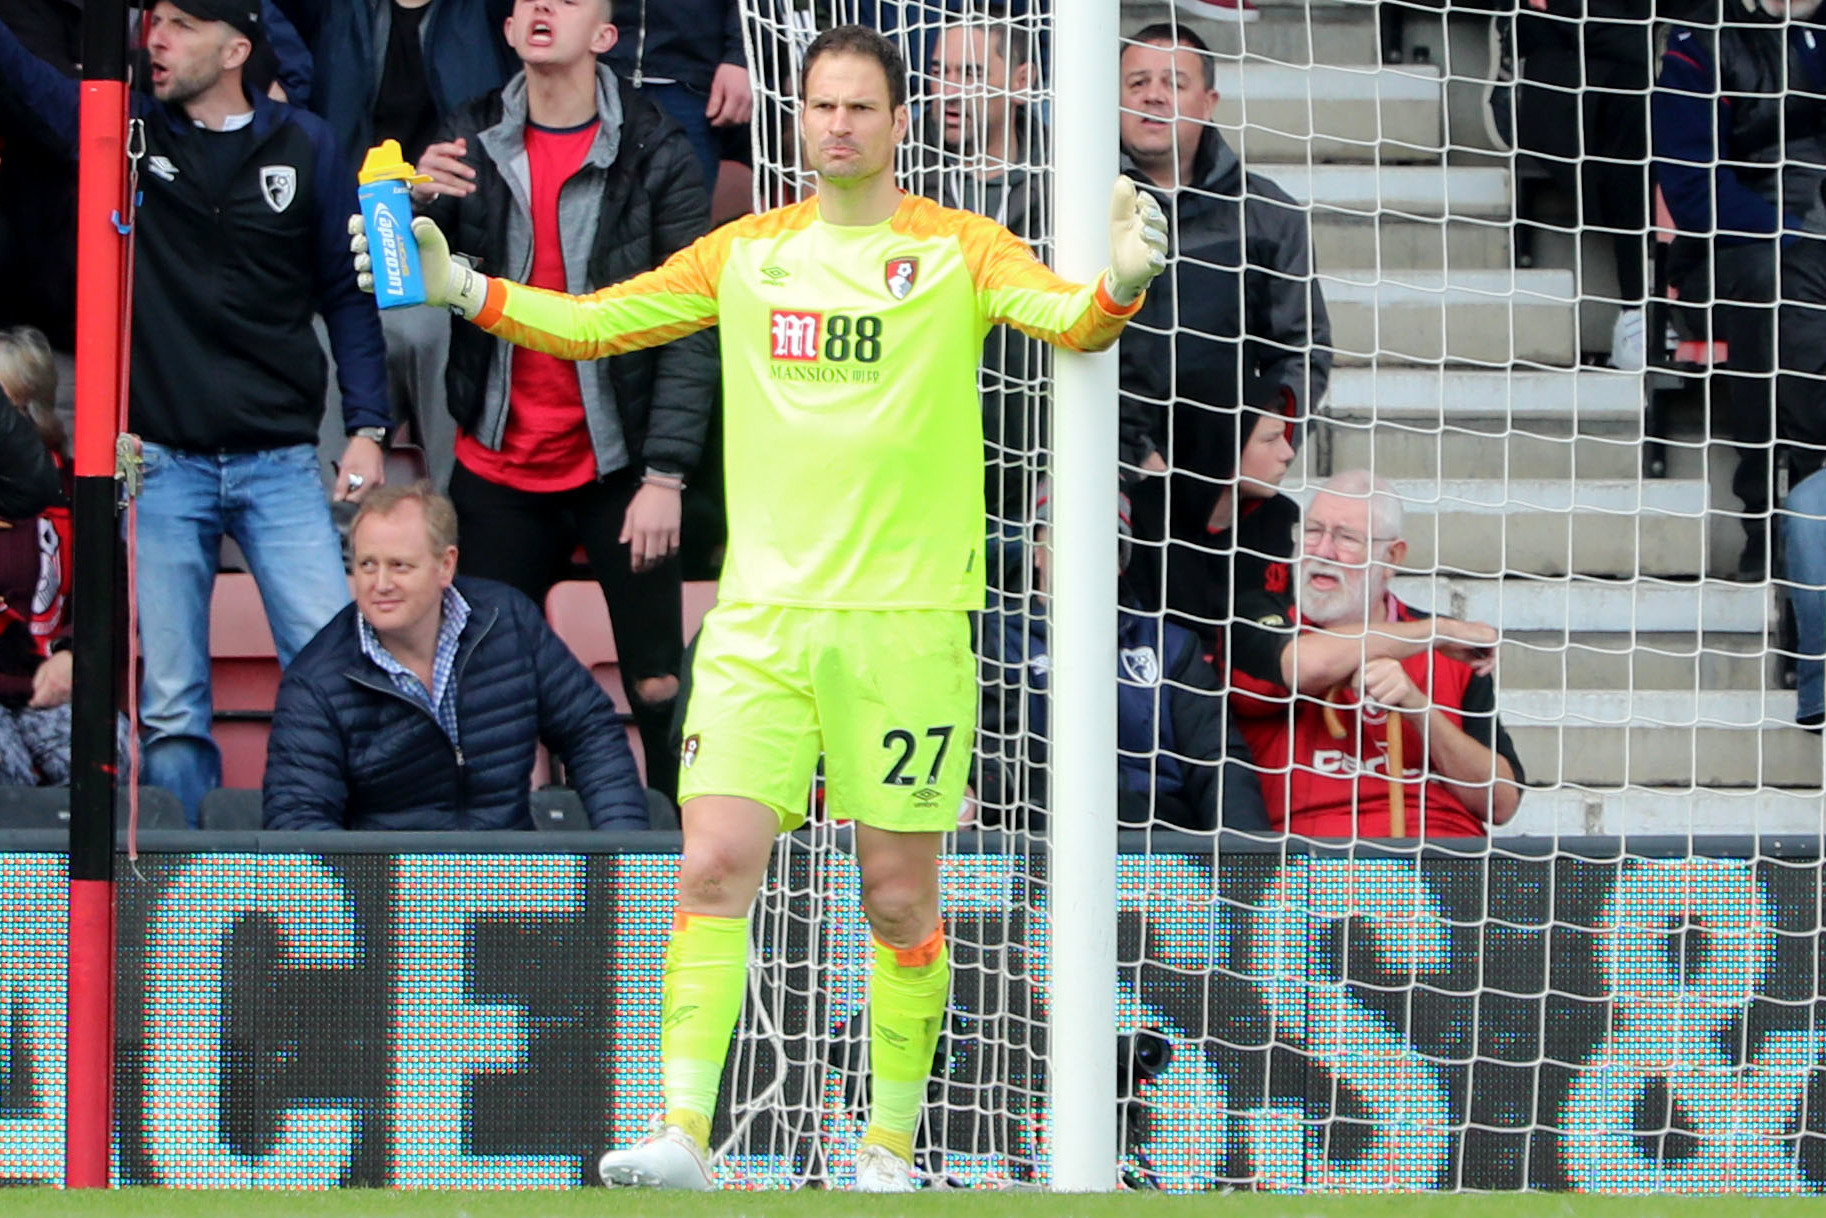 There's been no fall out with Begovic, says Howe